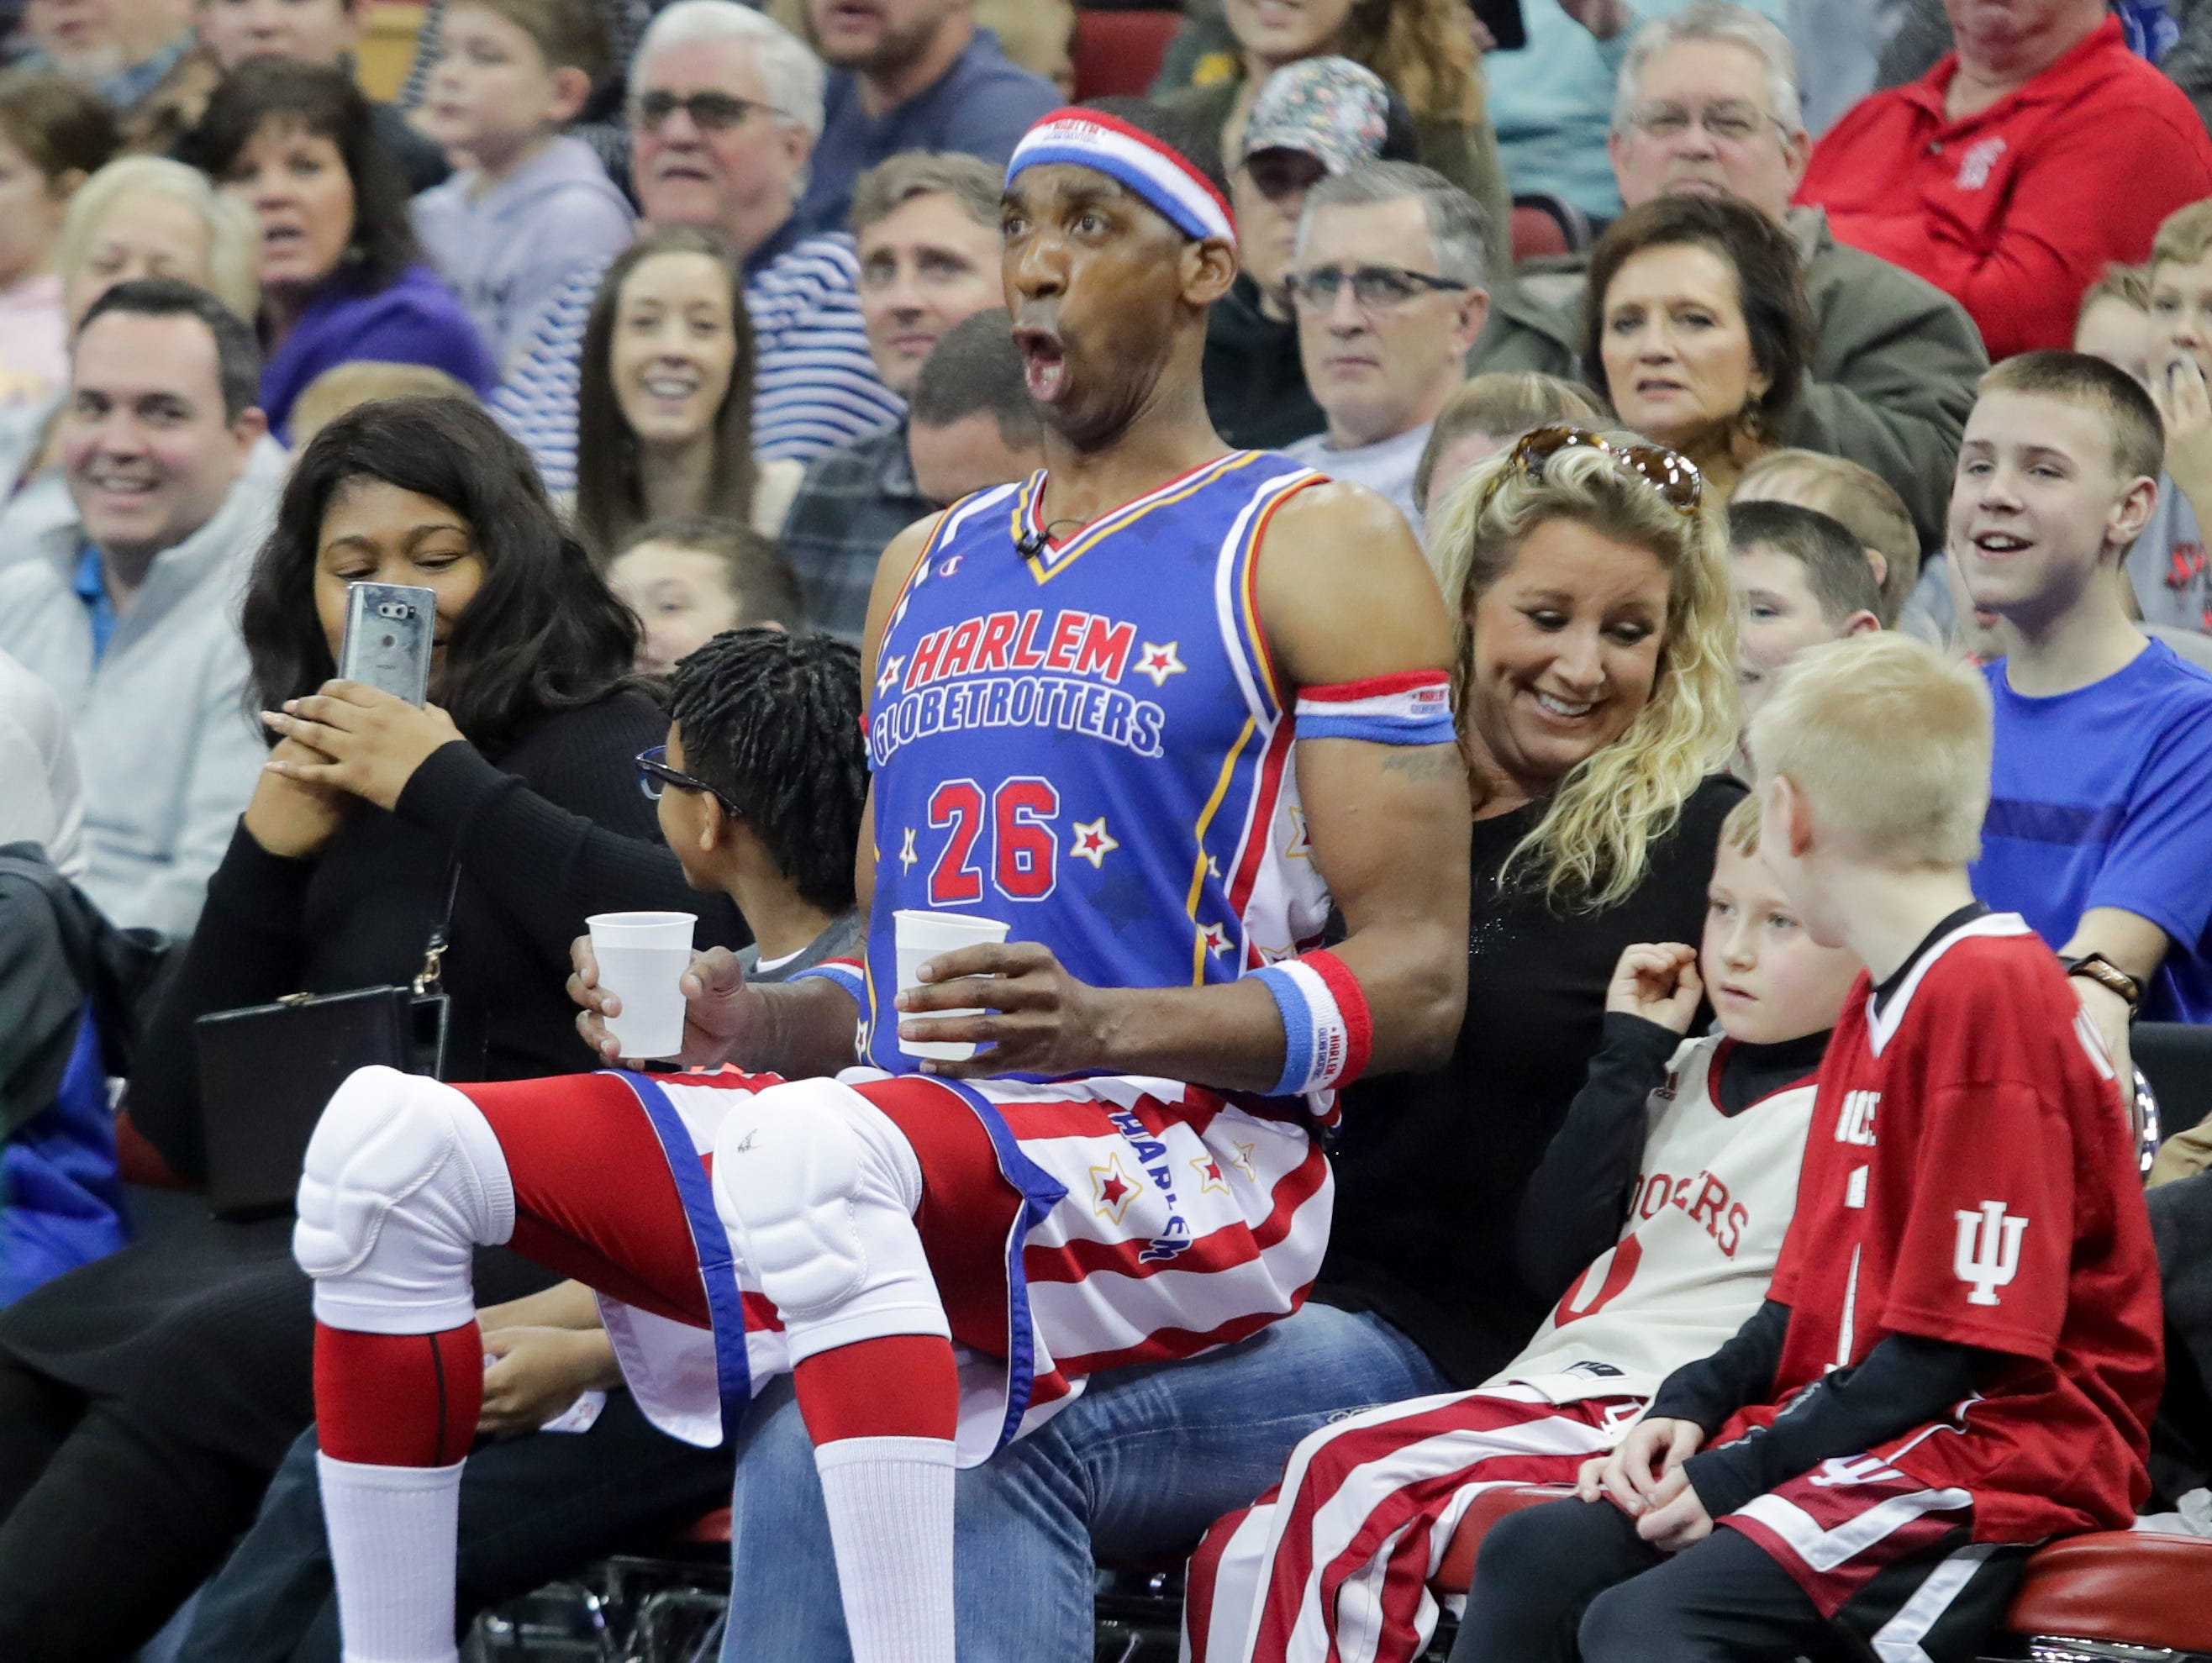 Harlem Globetrotters' Hi-Lite waits on a fan during free throws.